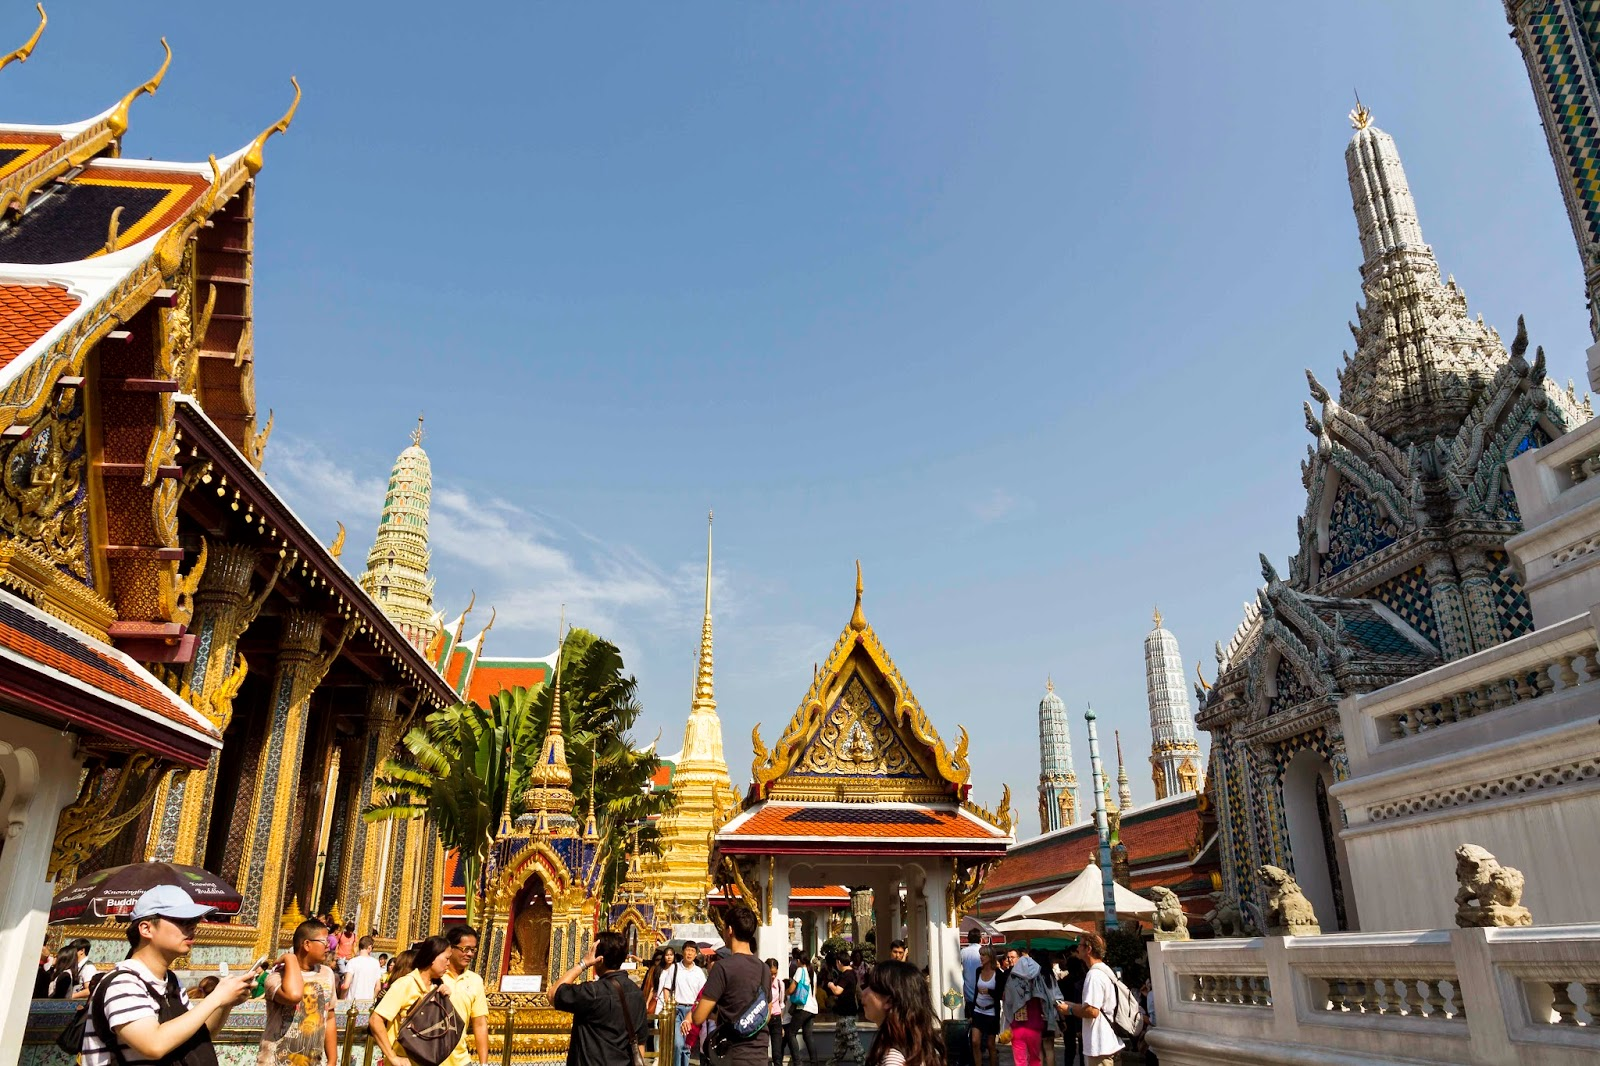 http://www.dreamstime.com/editorial-photo-grand-palace-bangkok-emerald-buddha-temple-thailand-image49056476